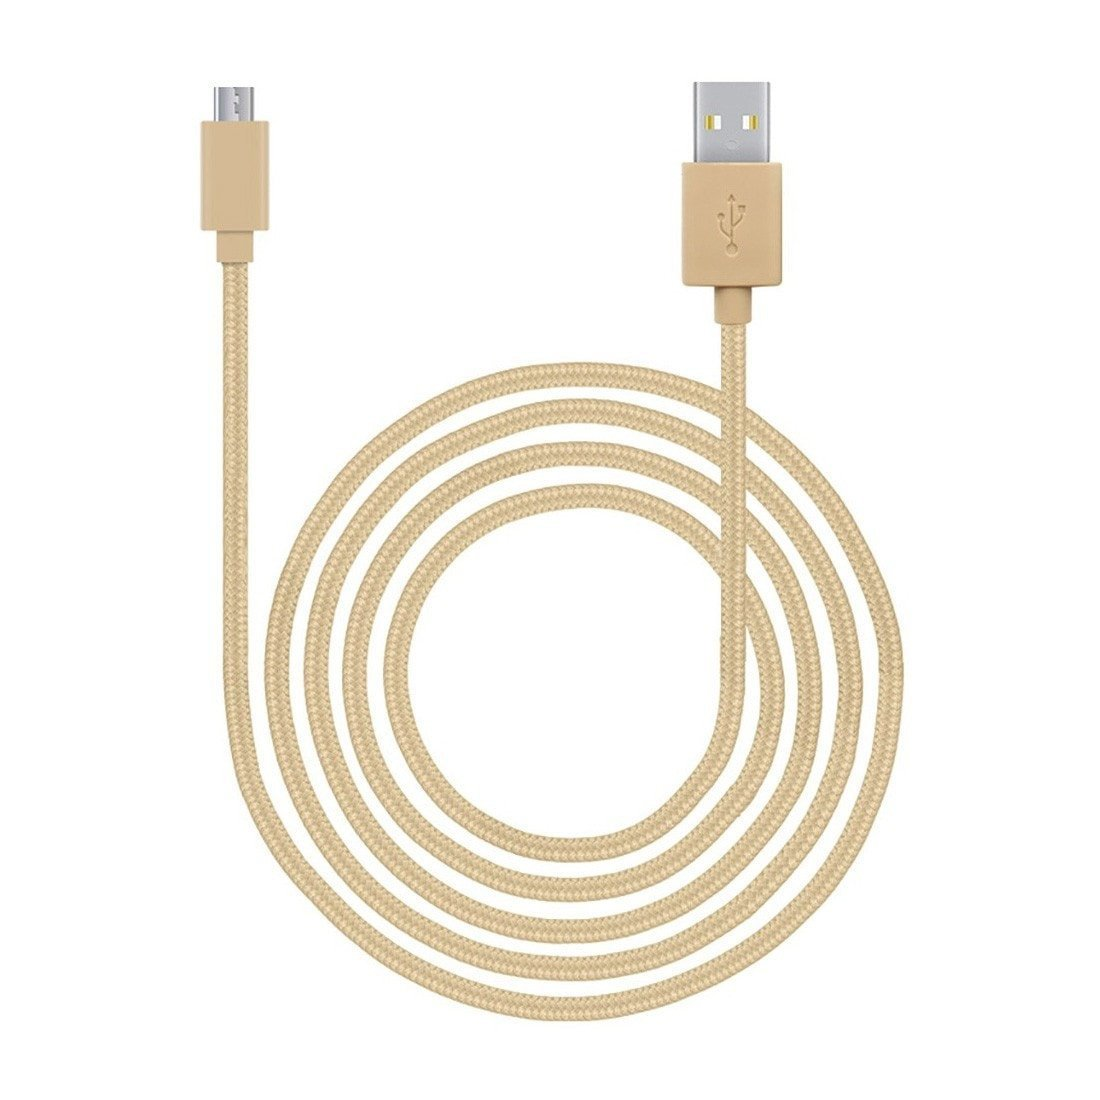 JCPal Cable LiNX Micro USB to USB Braided Cable Gold